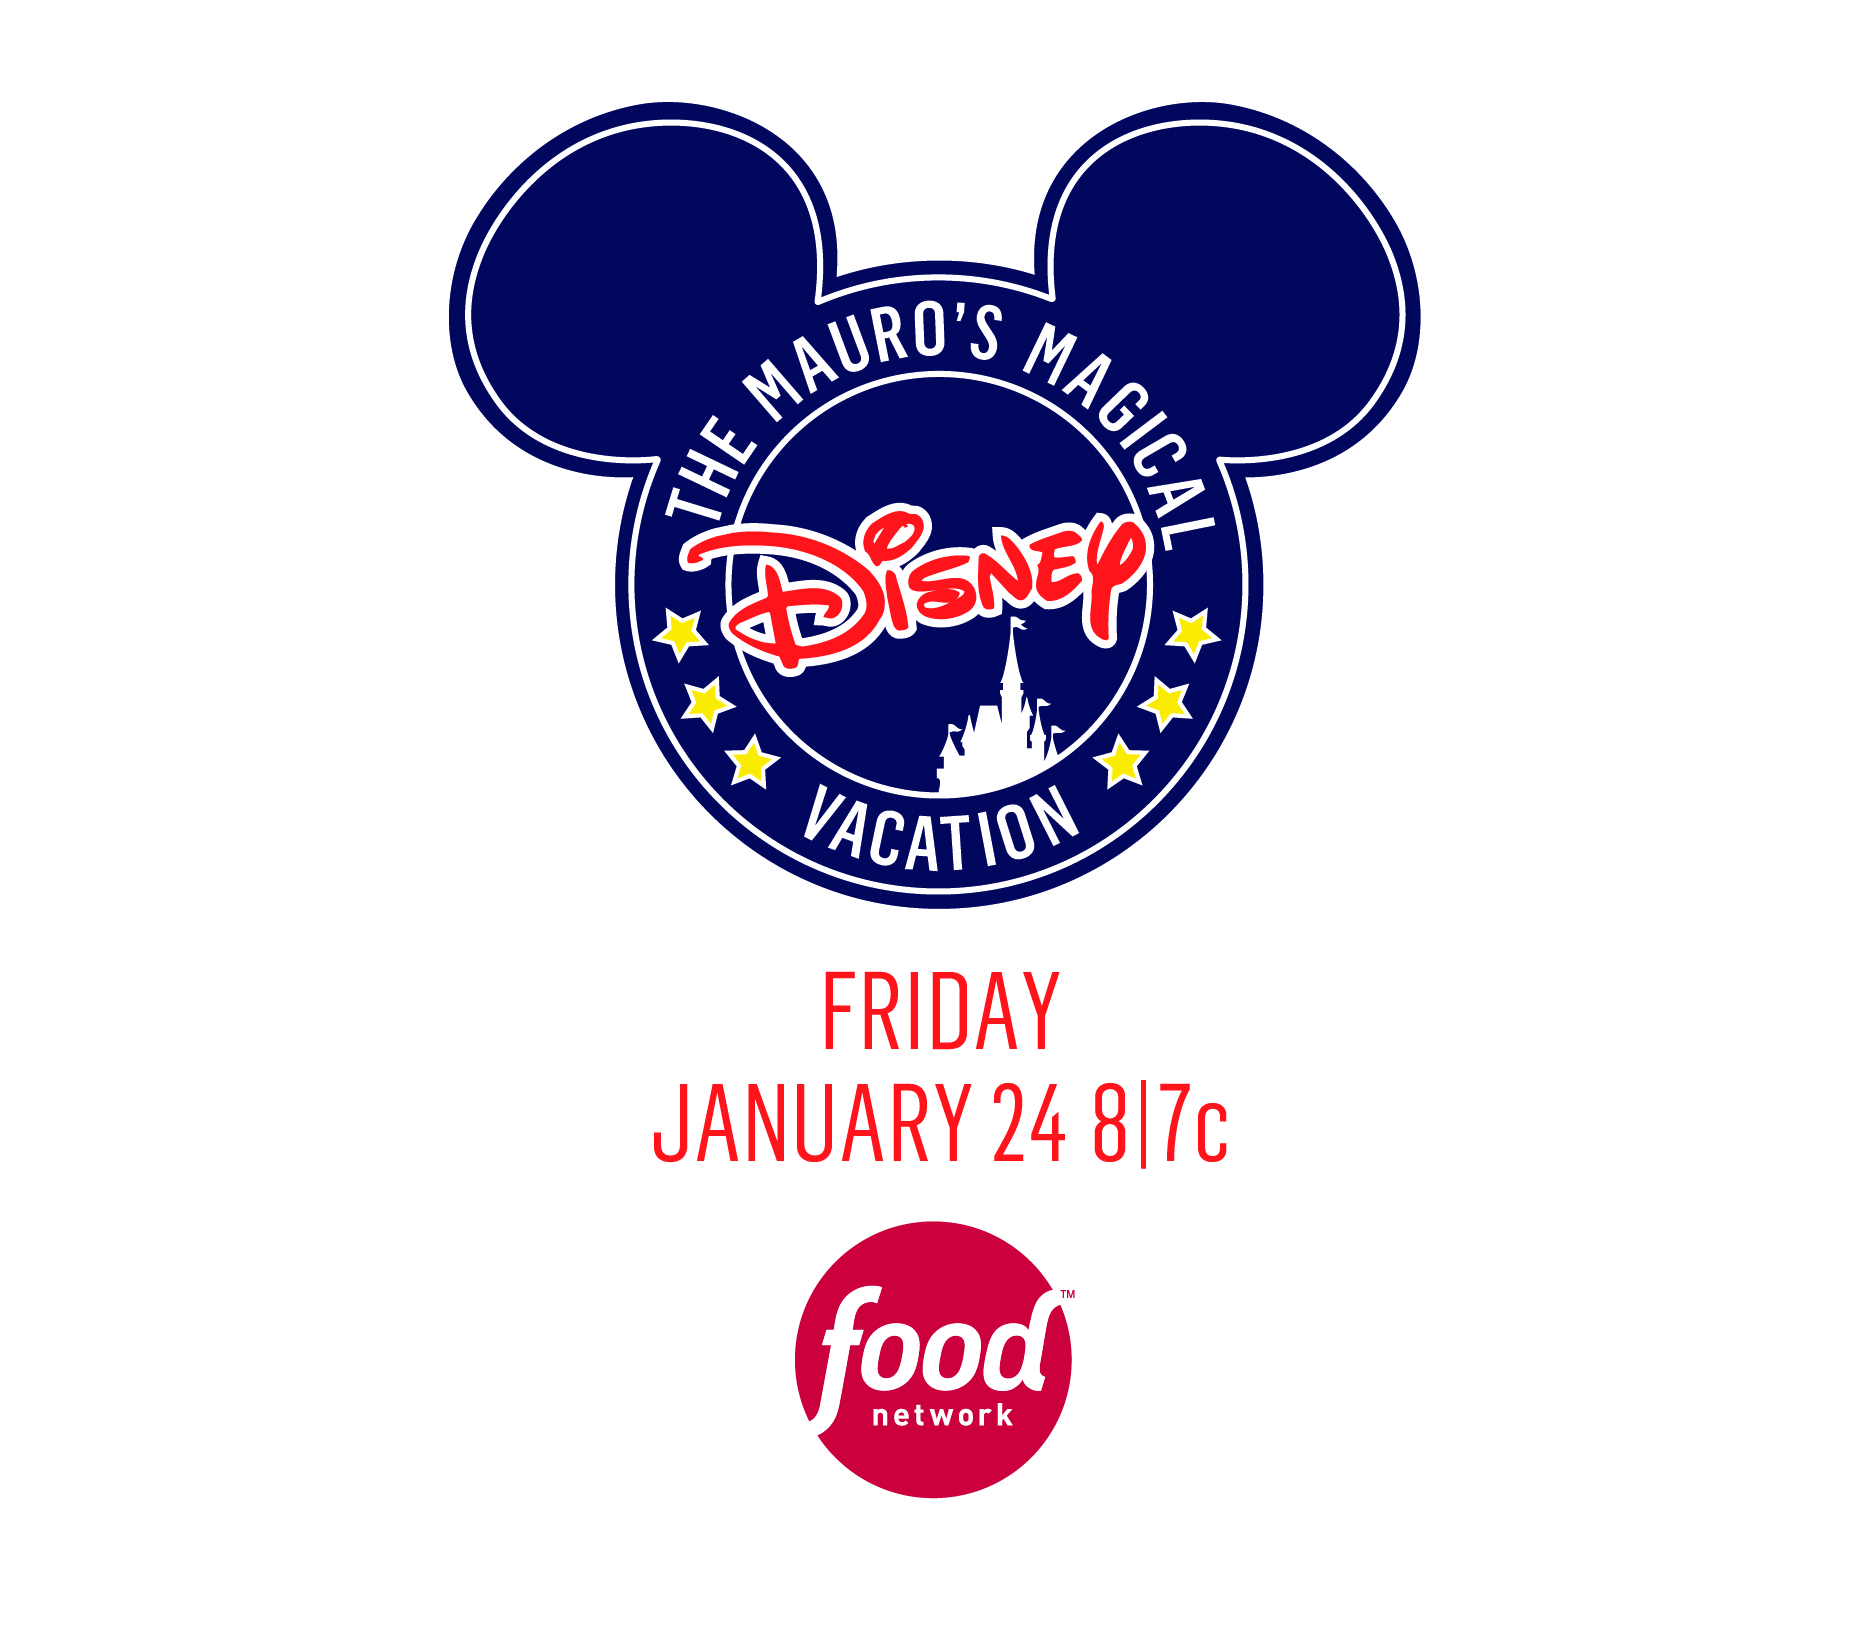 The Mauros Magical Disney Vacations Airs On Food Network